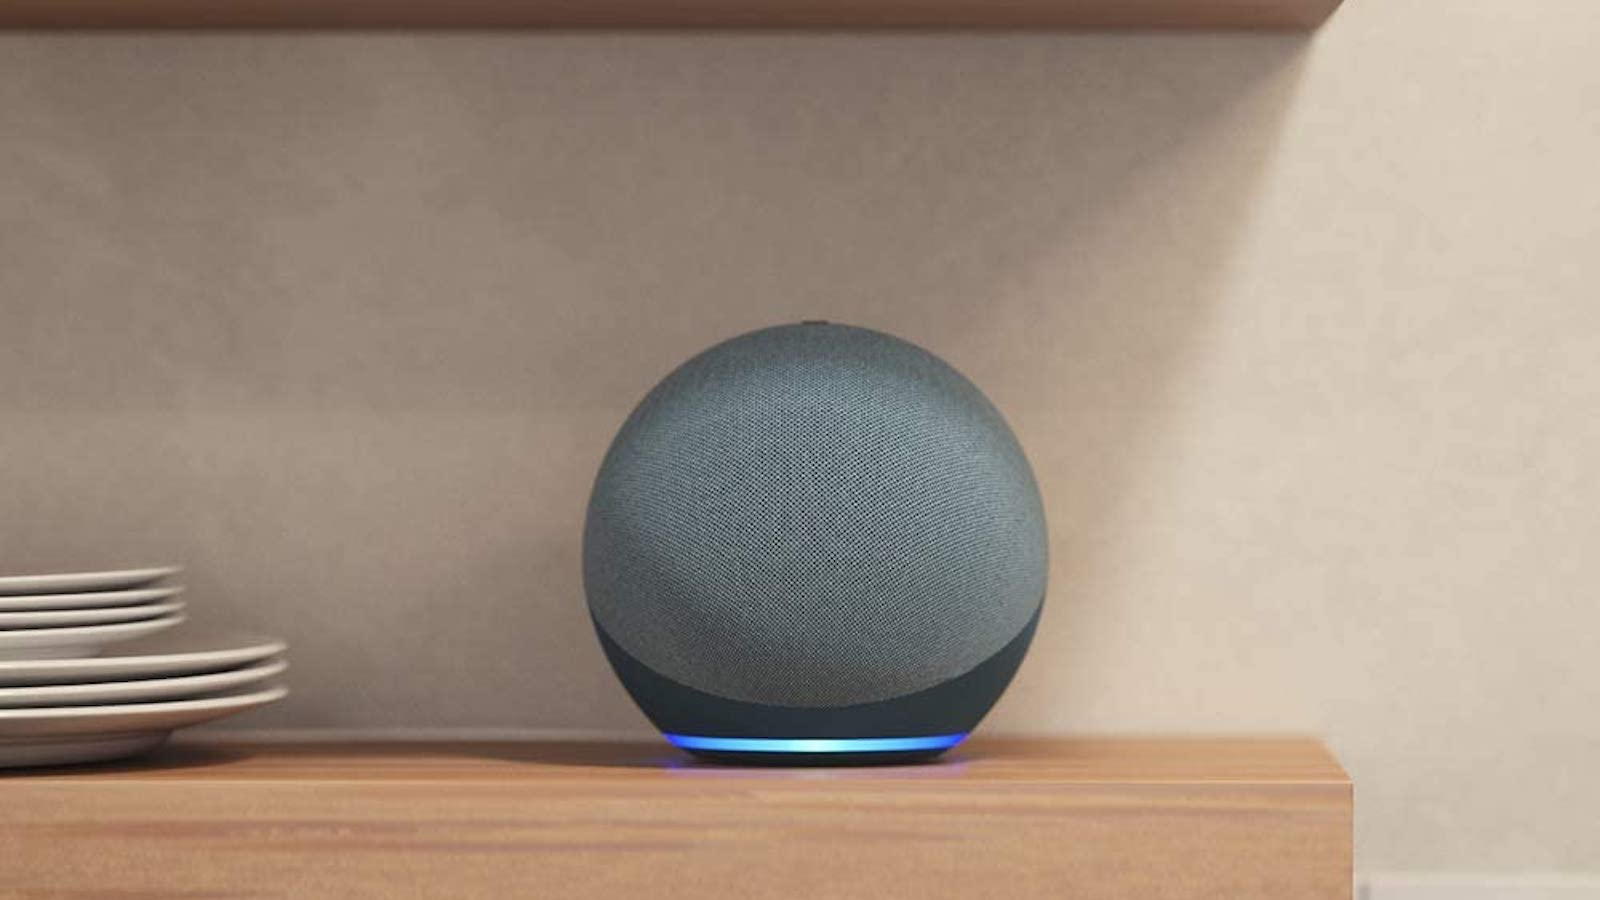 New Amazon Echo 4th-generation smart speaker comes in a spherical shape